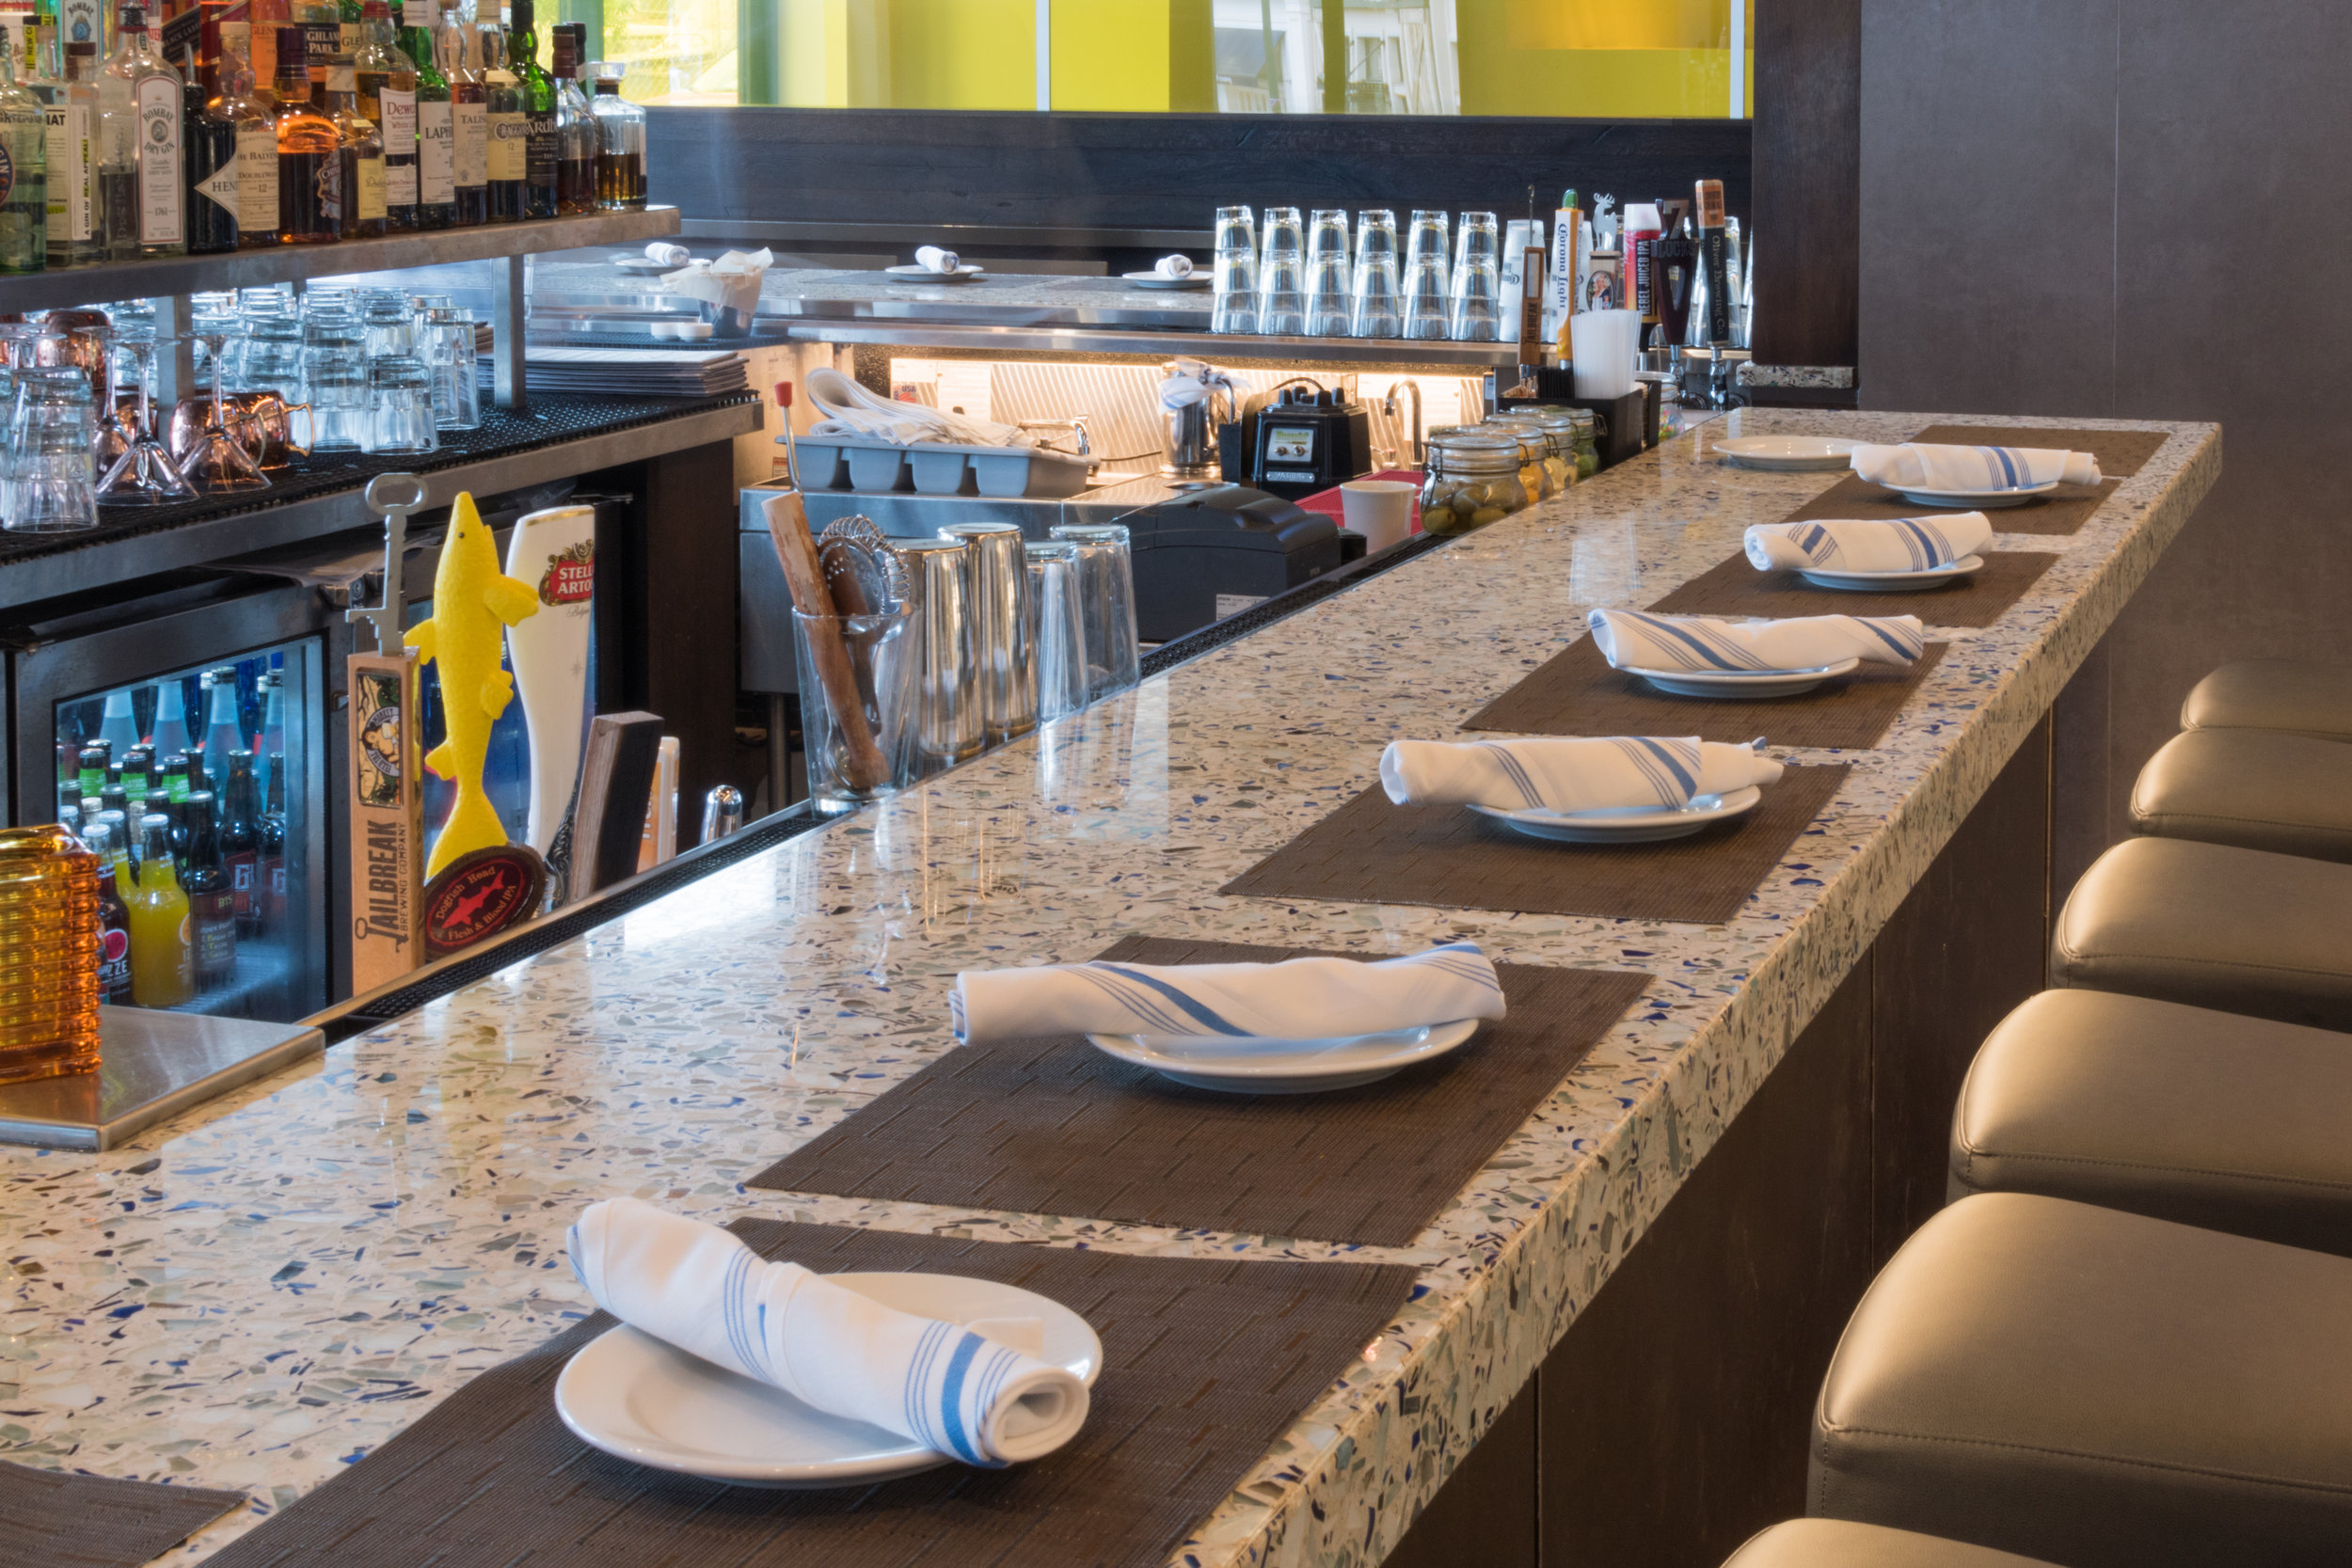 Passion Fish Restaurant - Bethesda,MD - Big Chivalry Blue Vetrazzo - Counters (10 of 13).jpg